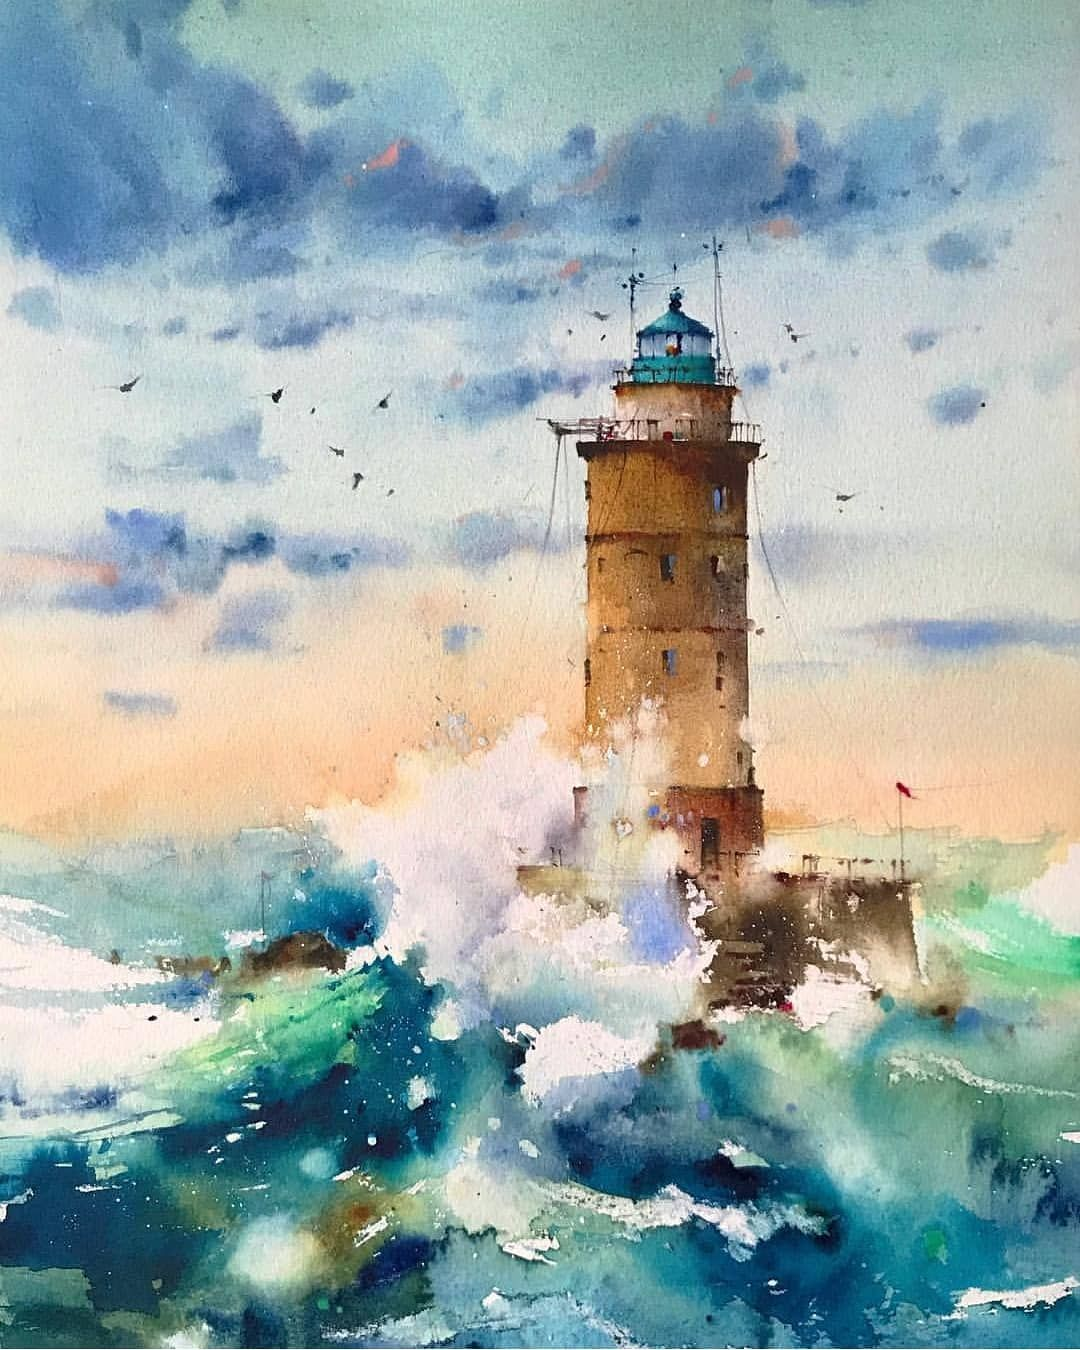 Watercolor By Blanca Alvarez Artist Art Artistic Artwork